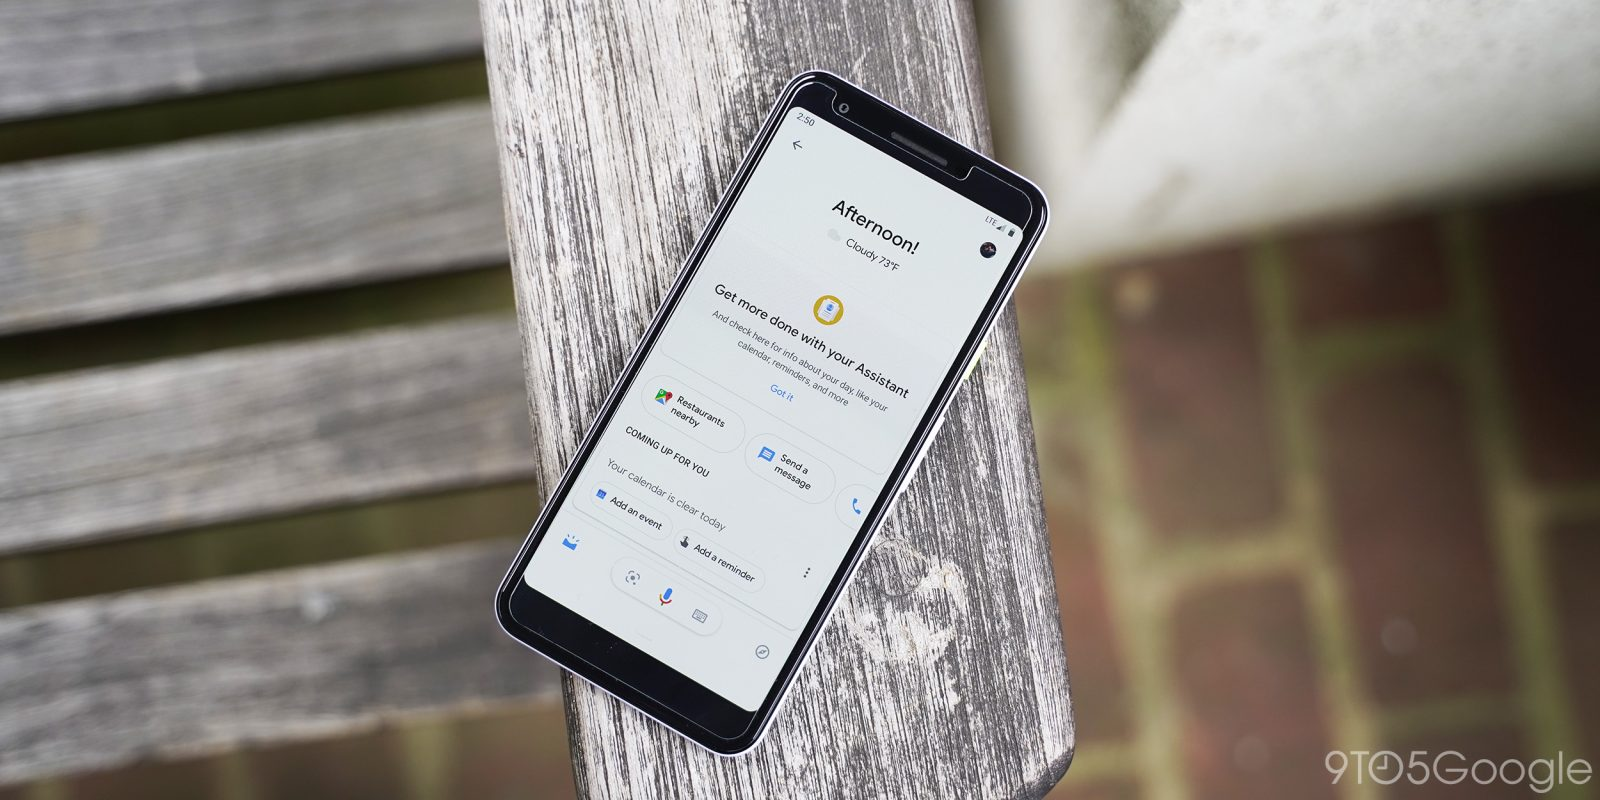 Google Assistant Updates feed adds music, weather cards